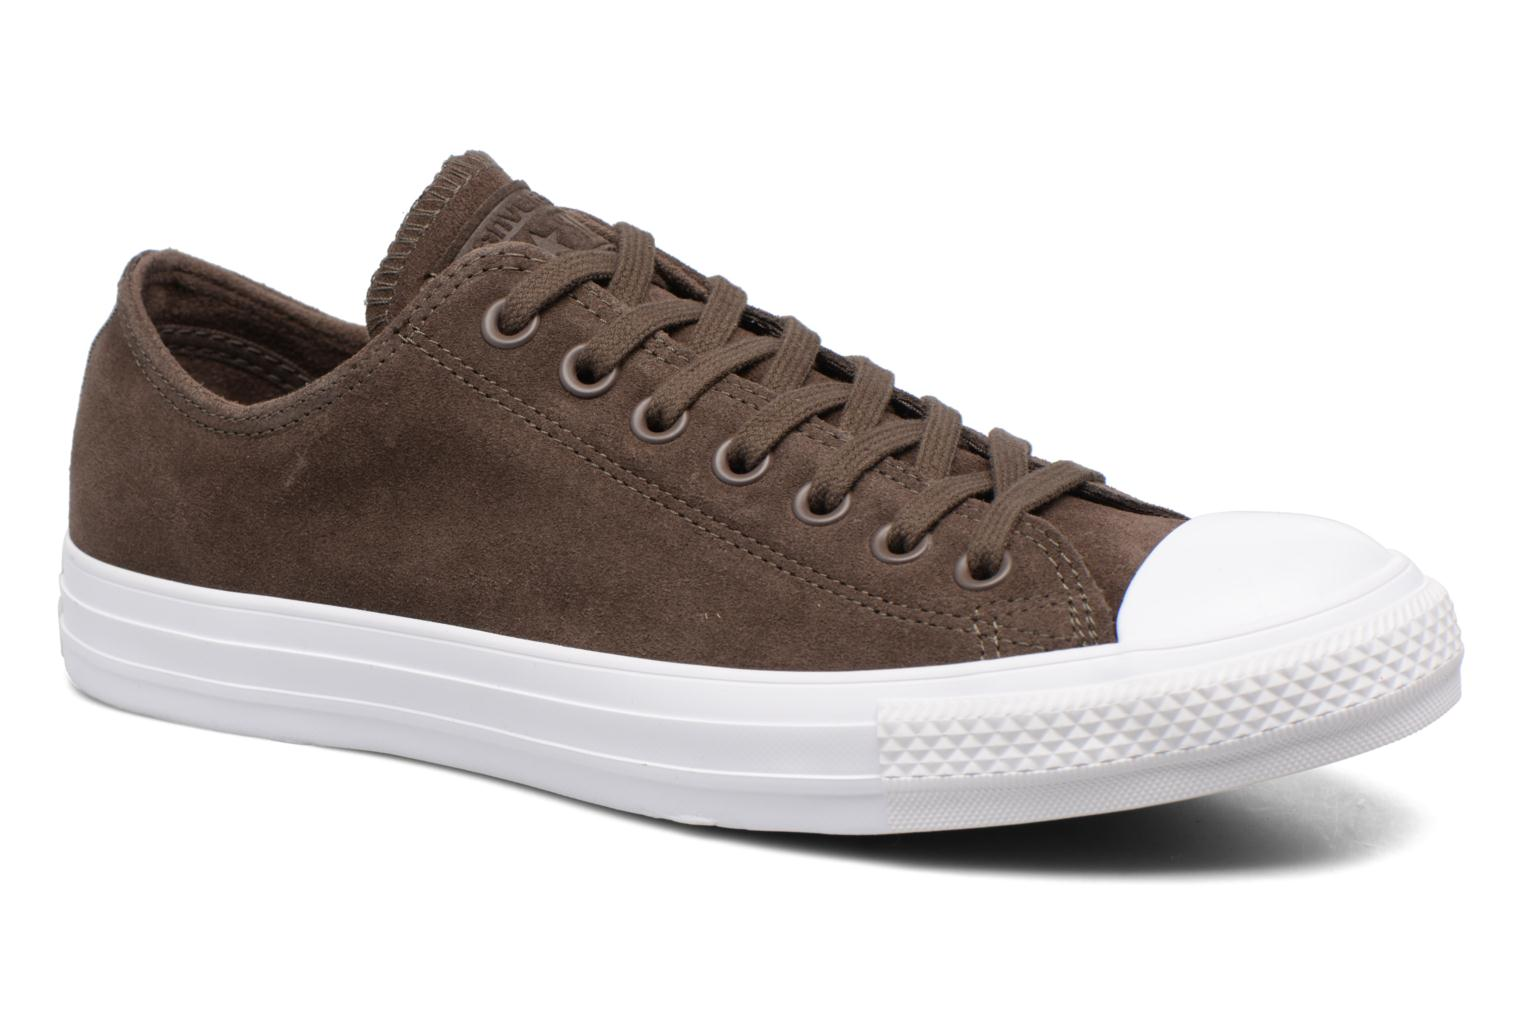 Sneakers Uomo Chuck Taylor All Star Plush Suede Ox